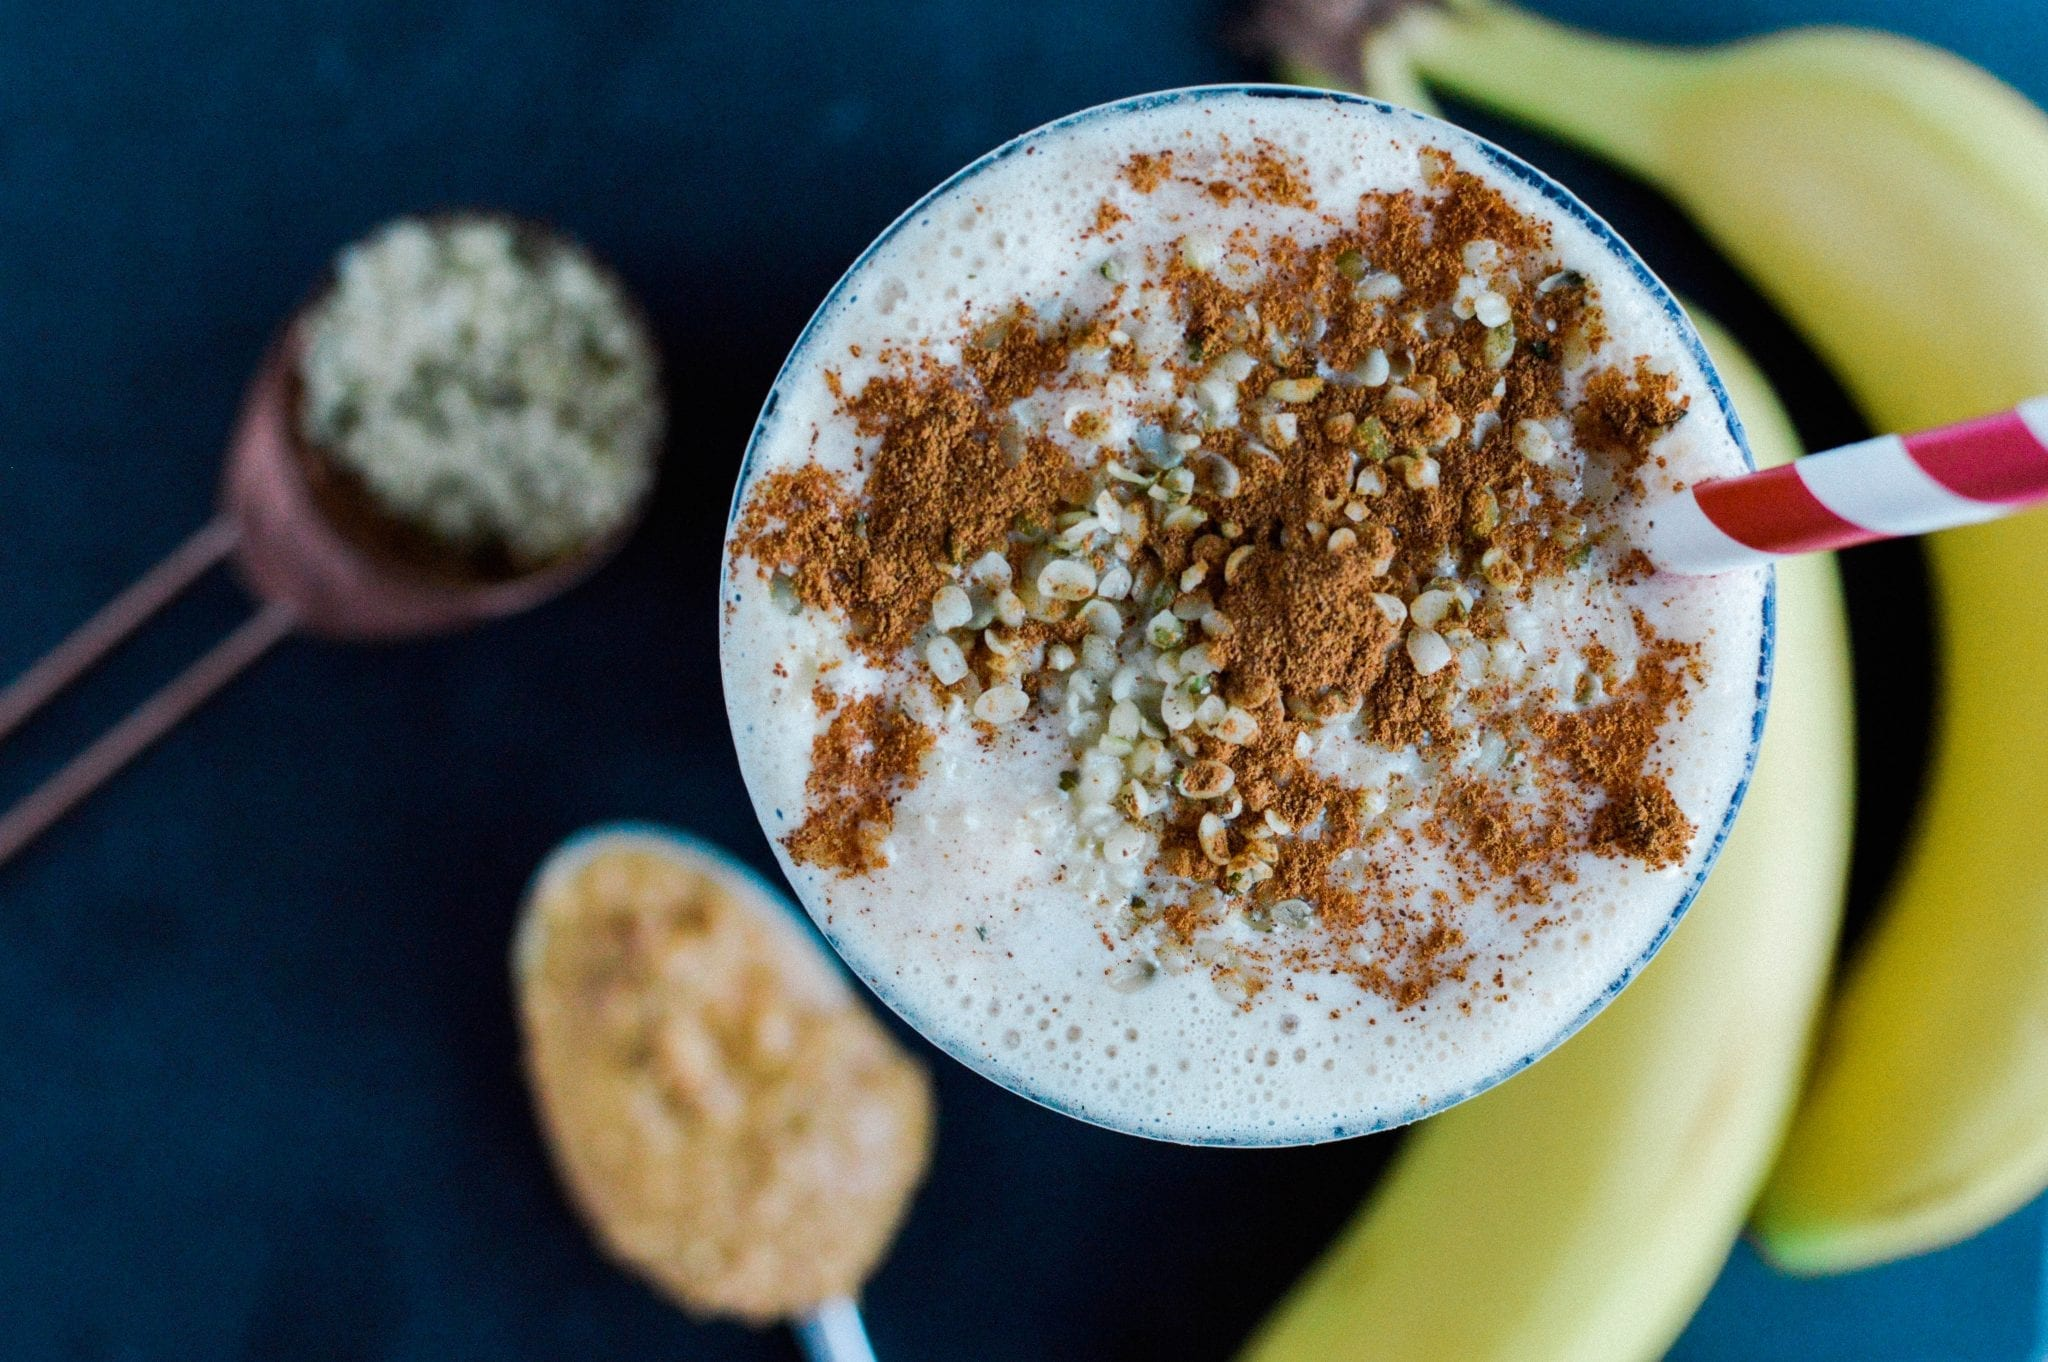 Creamy Peanut Butter Banana Smoothie | Vegan | Dairy-Free | Soy-Free | Gluten-Free